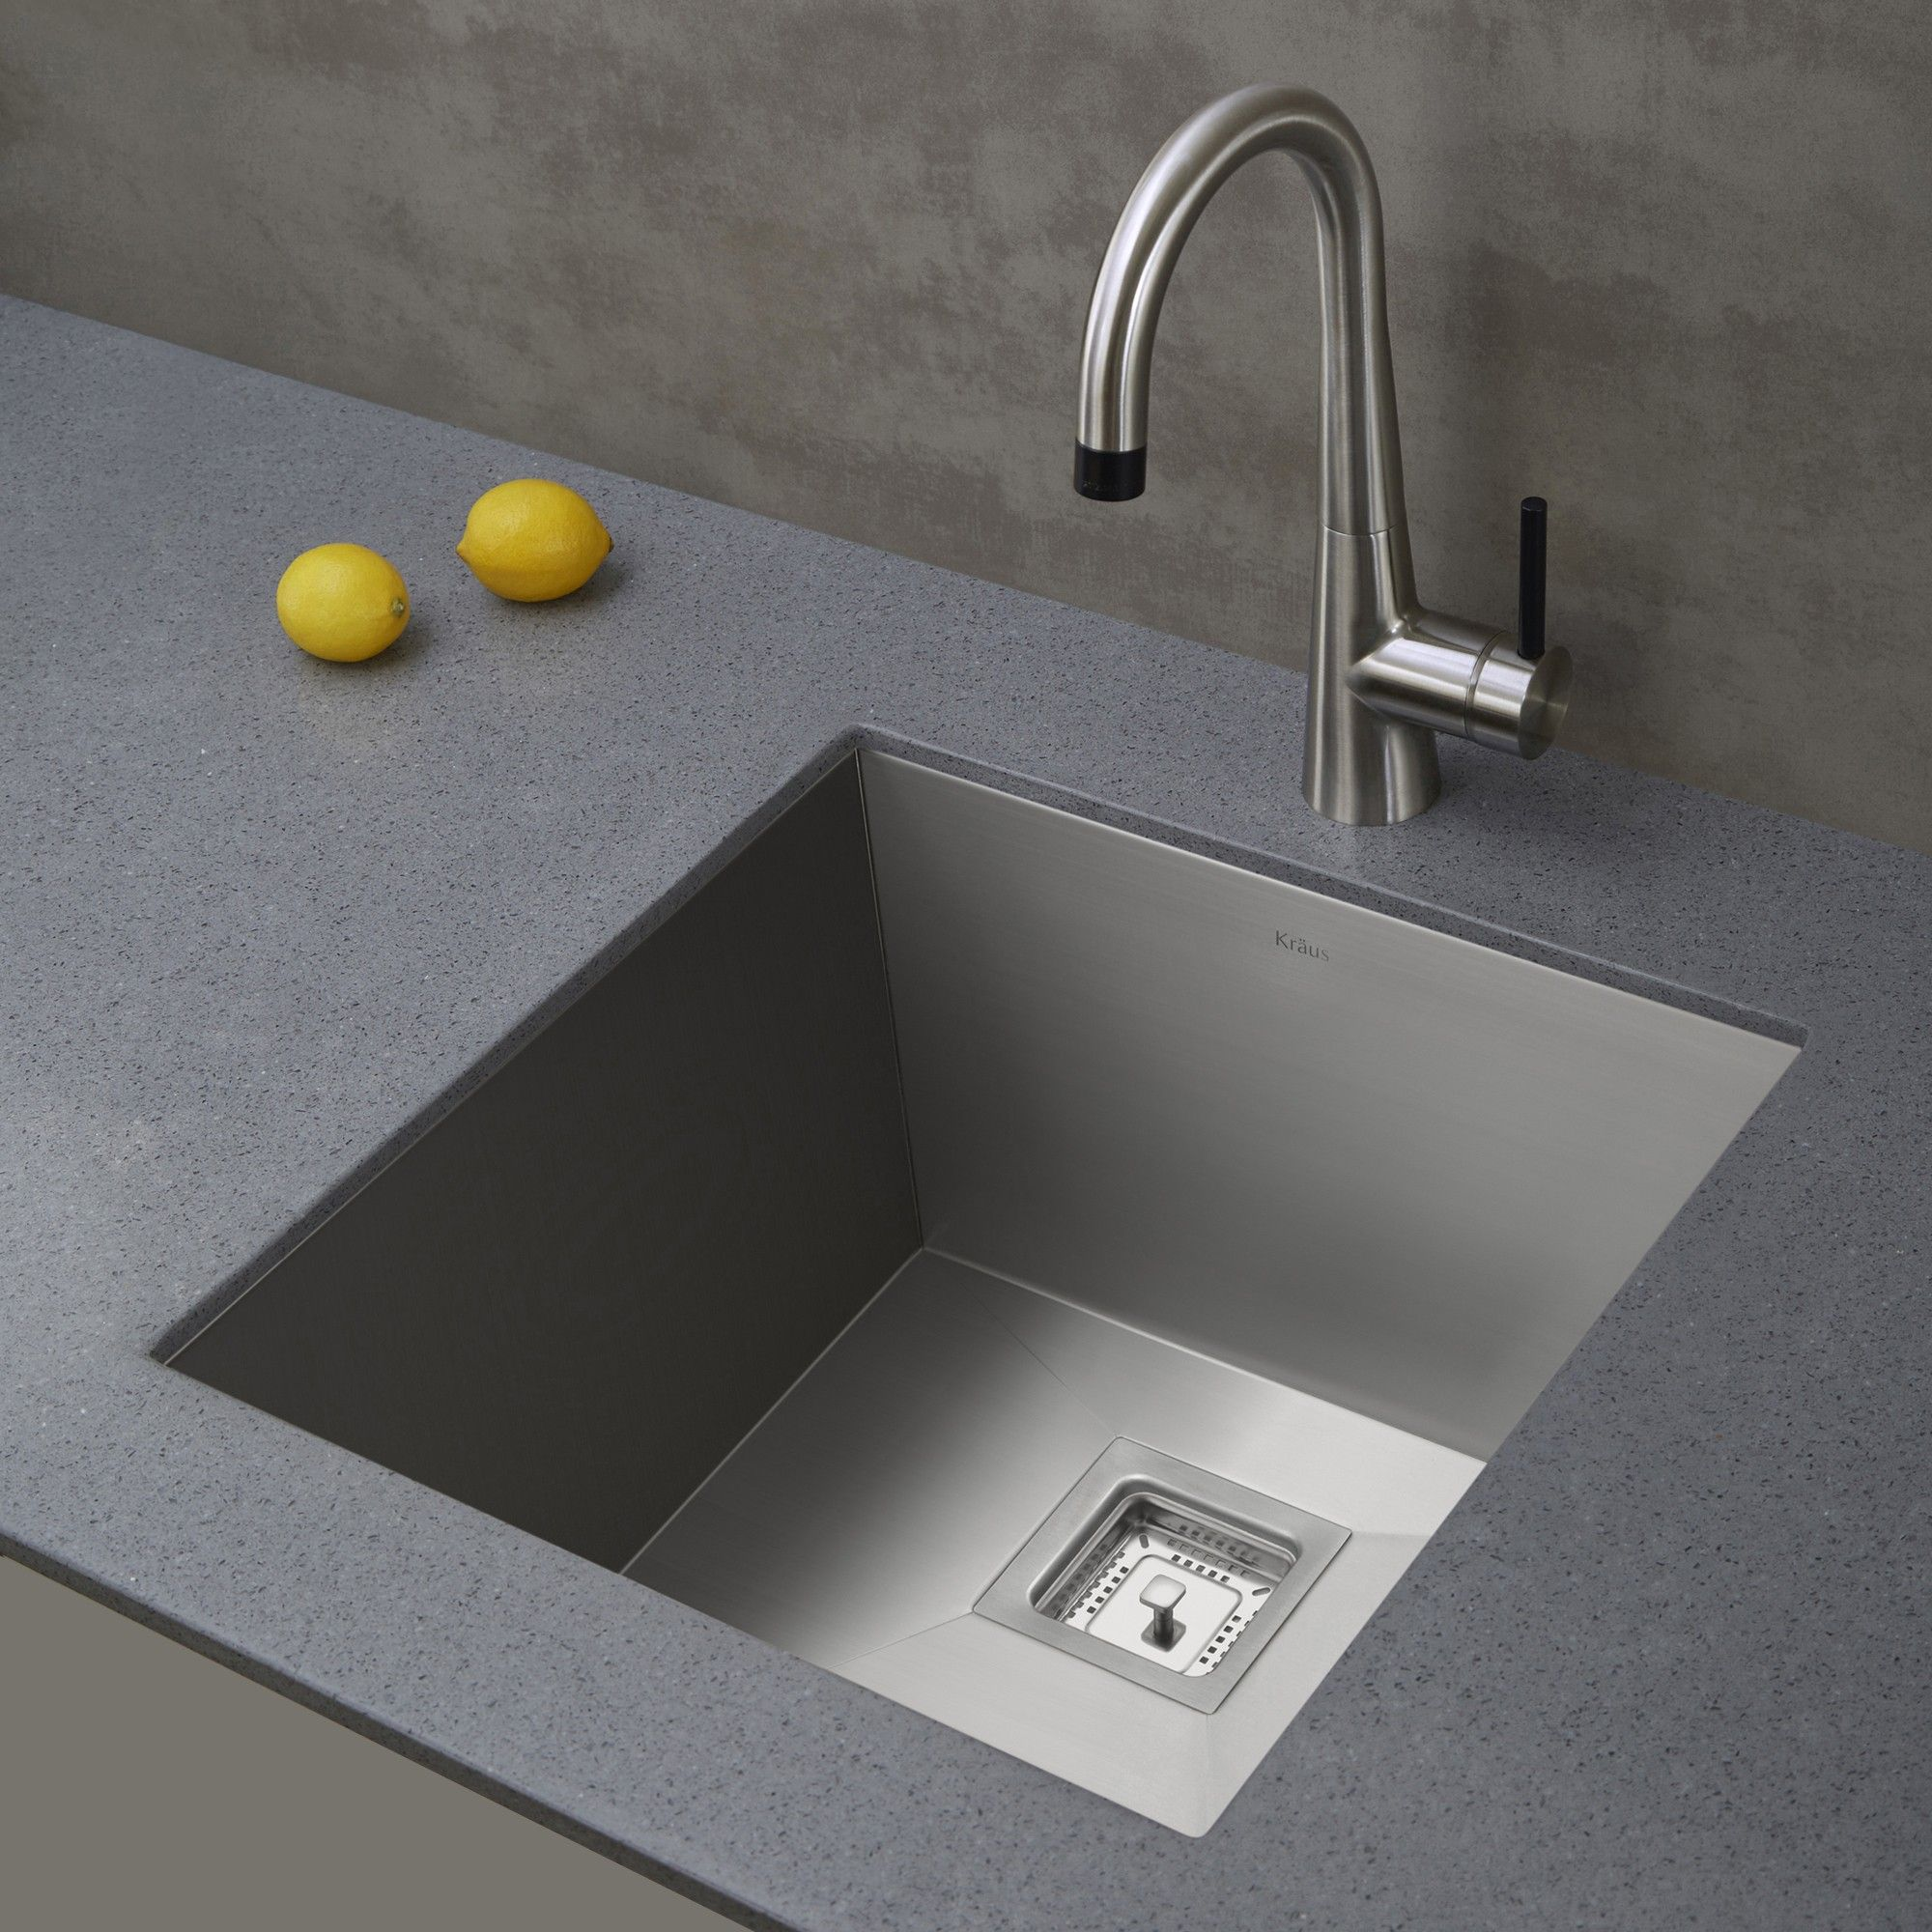 Kraus Pax Zero Radius 18 ½ Inch Handmade Undermount Single Bowl Gauge Stainless Steel Bar Sink With Noisedefend Soundproofing